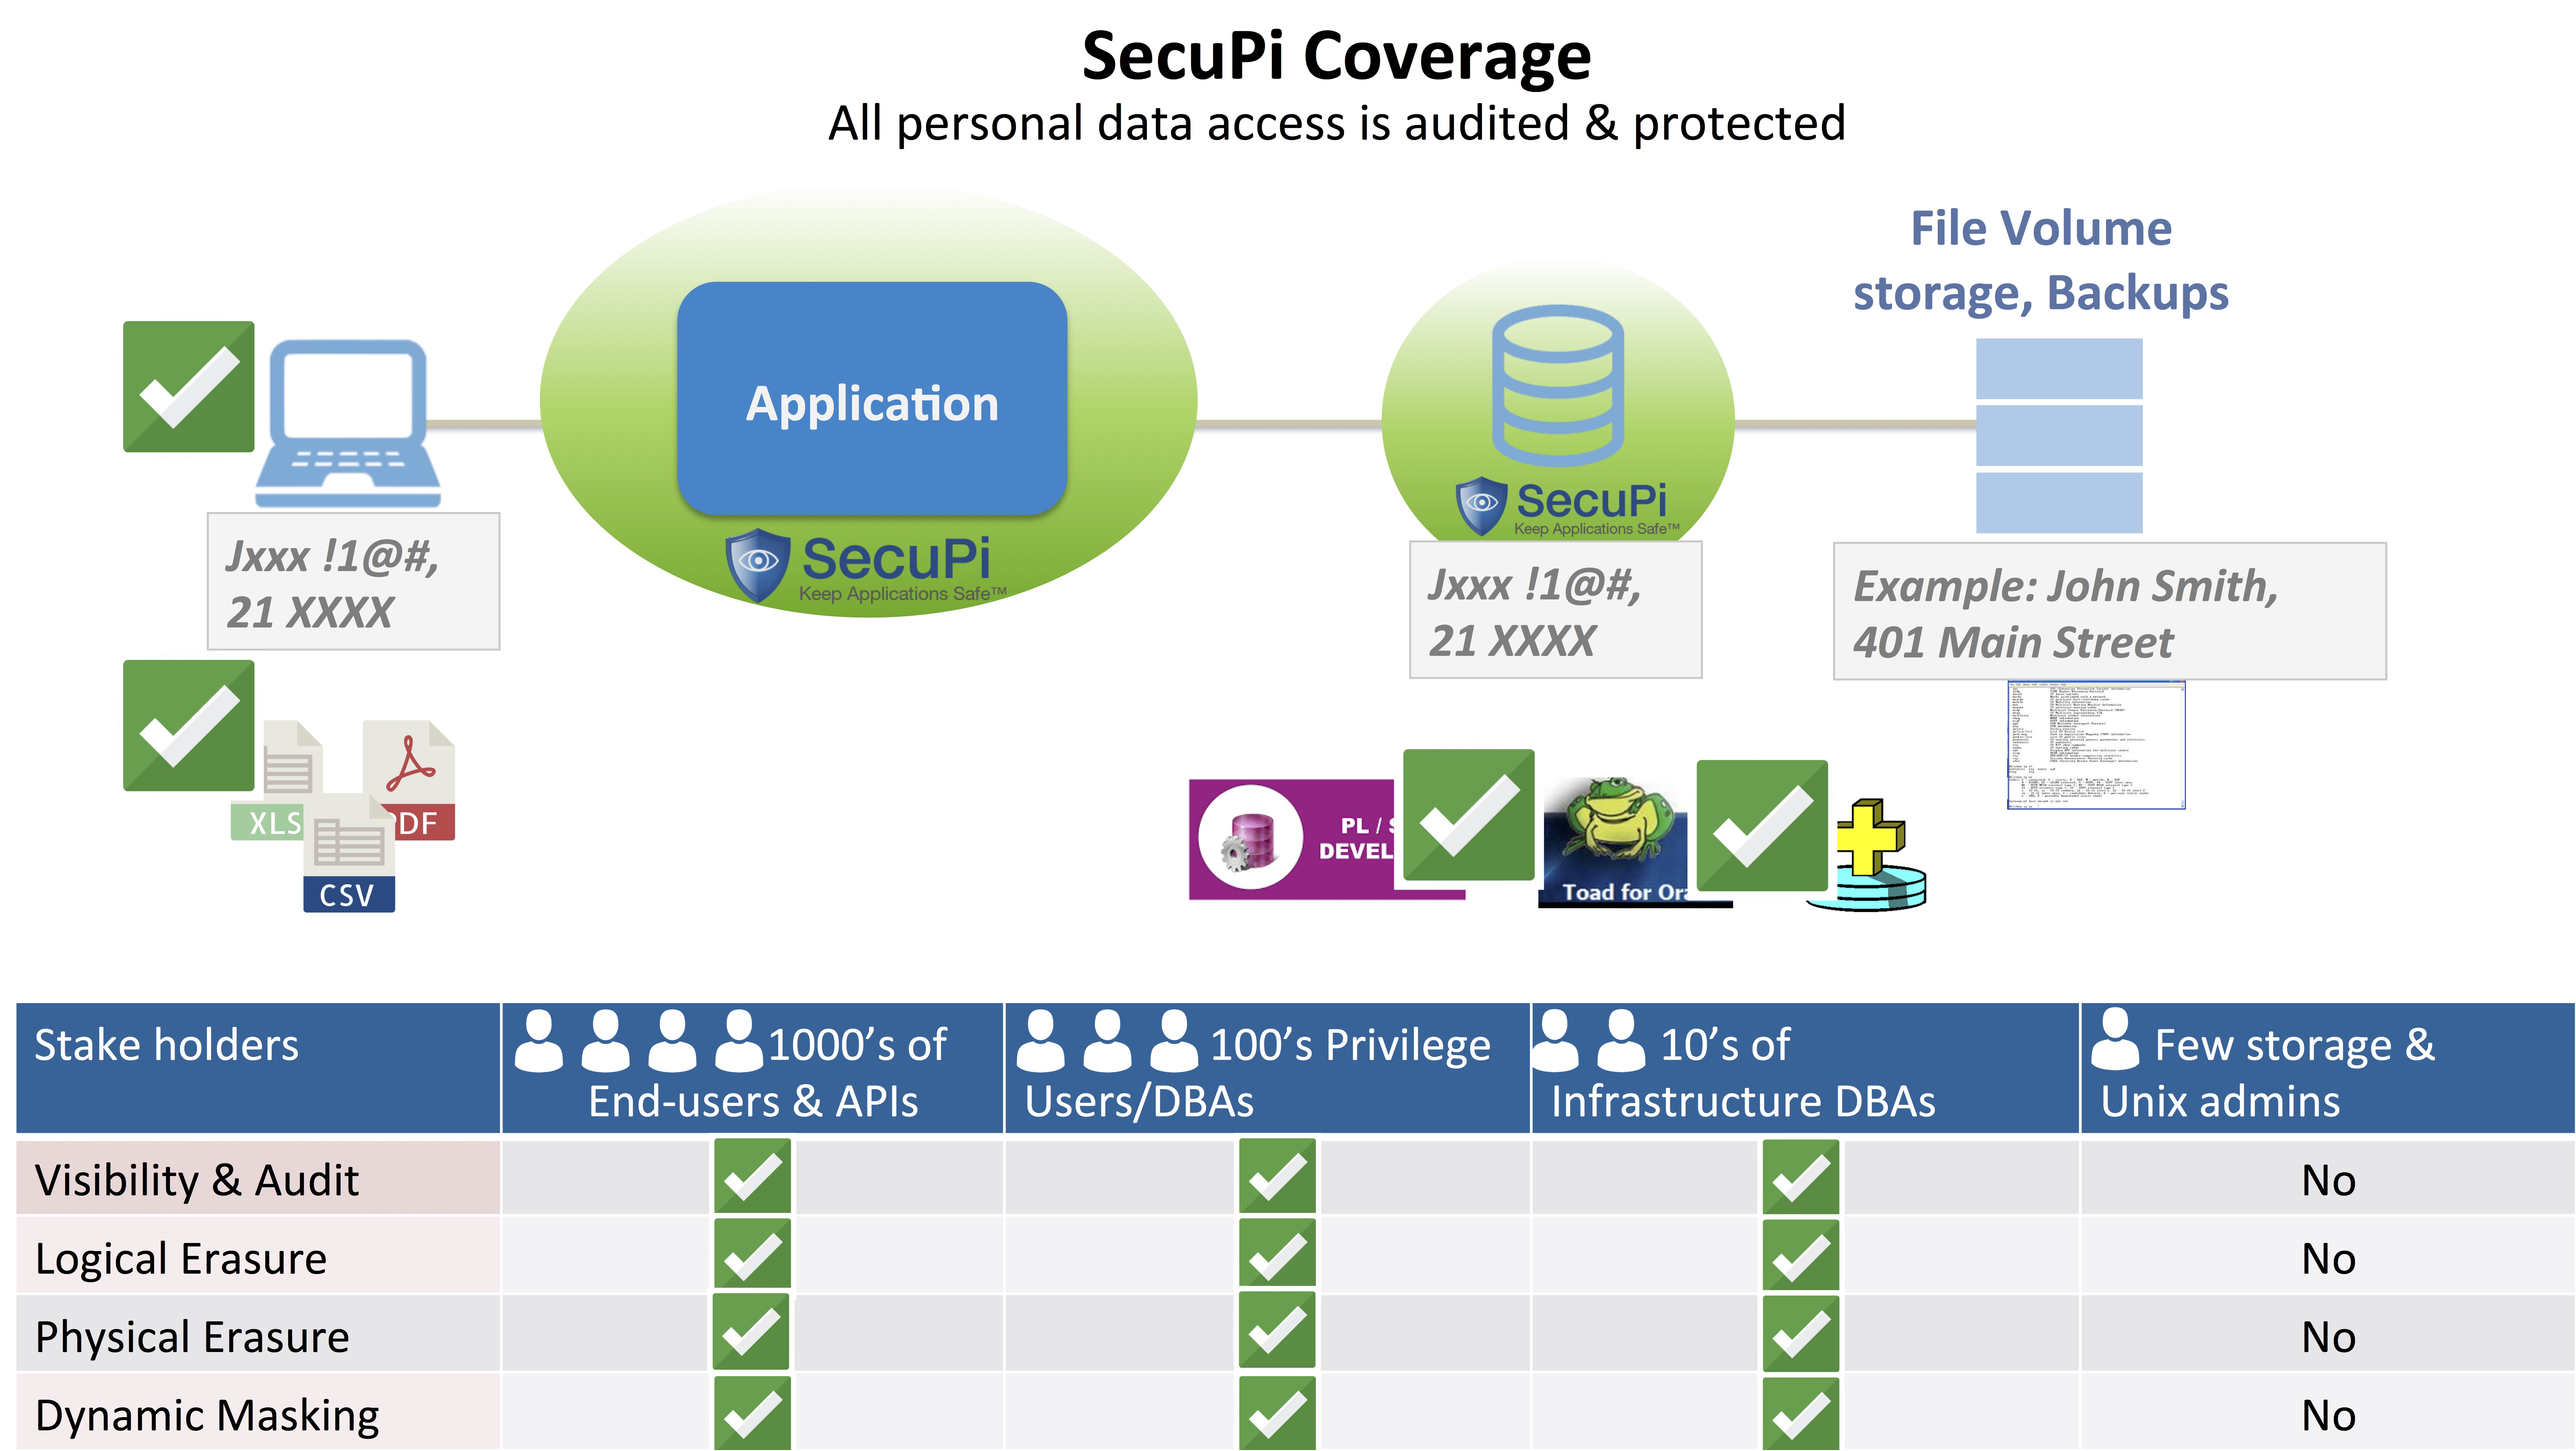 SecuPi General Coverage slide1